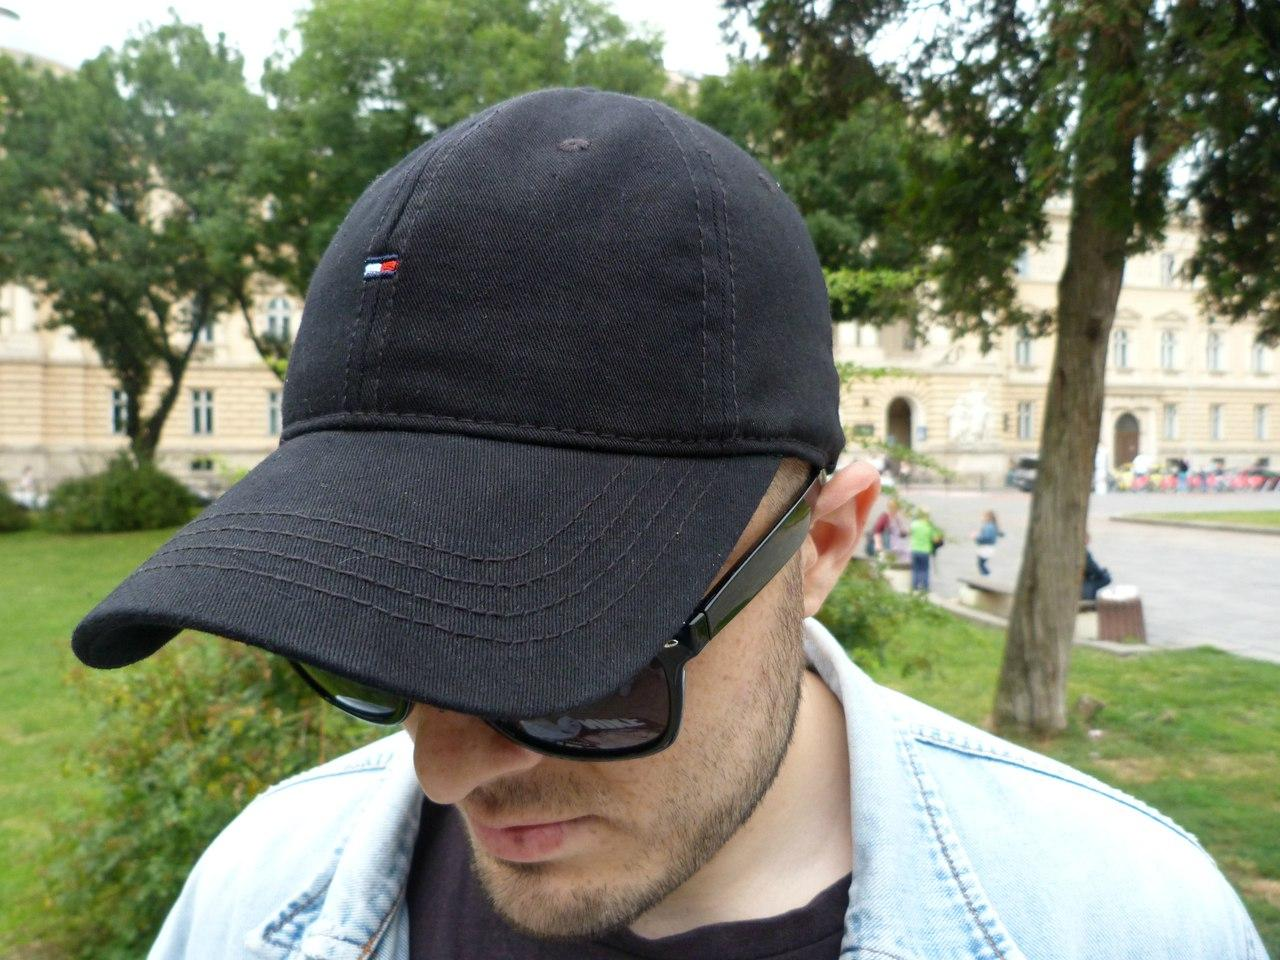 Кепка Cap by Tommy Hilfiger (бейсболка). Живое фото! (Реплика ААА+)